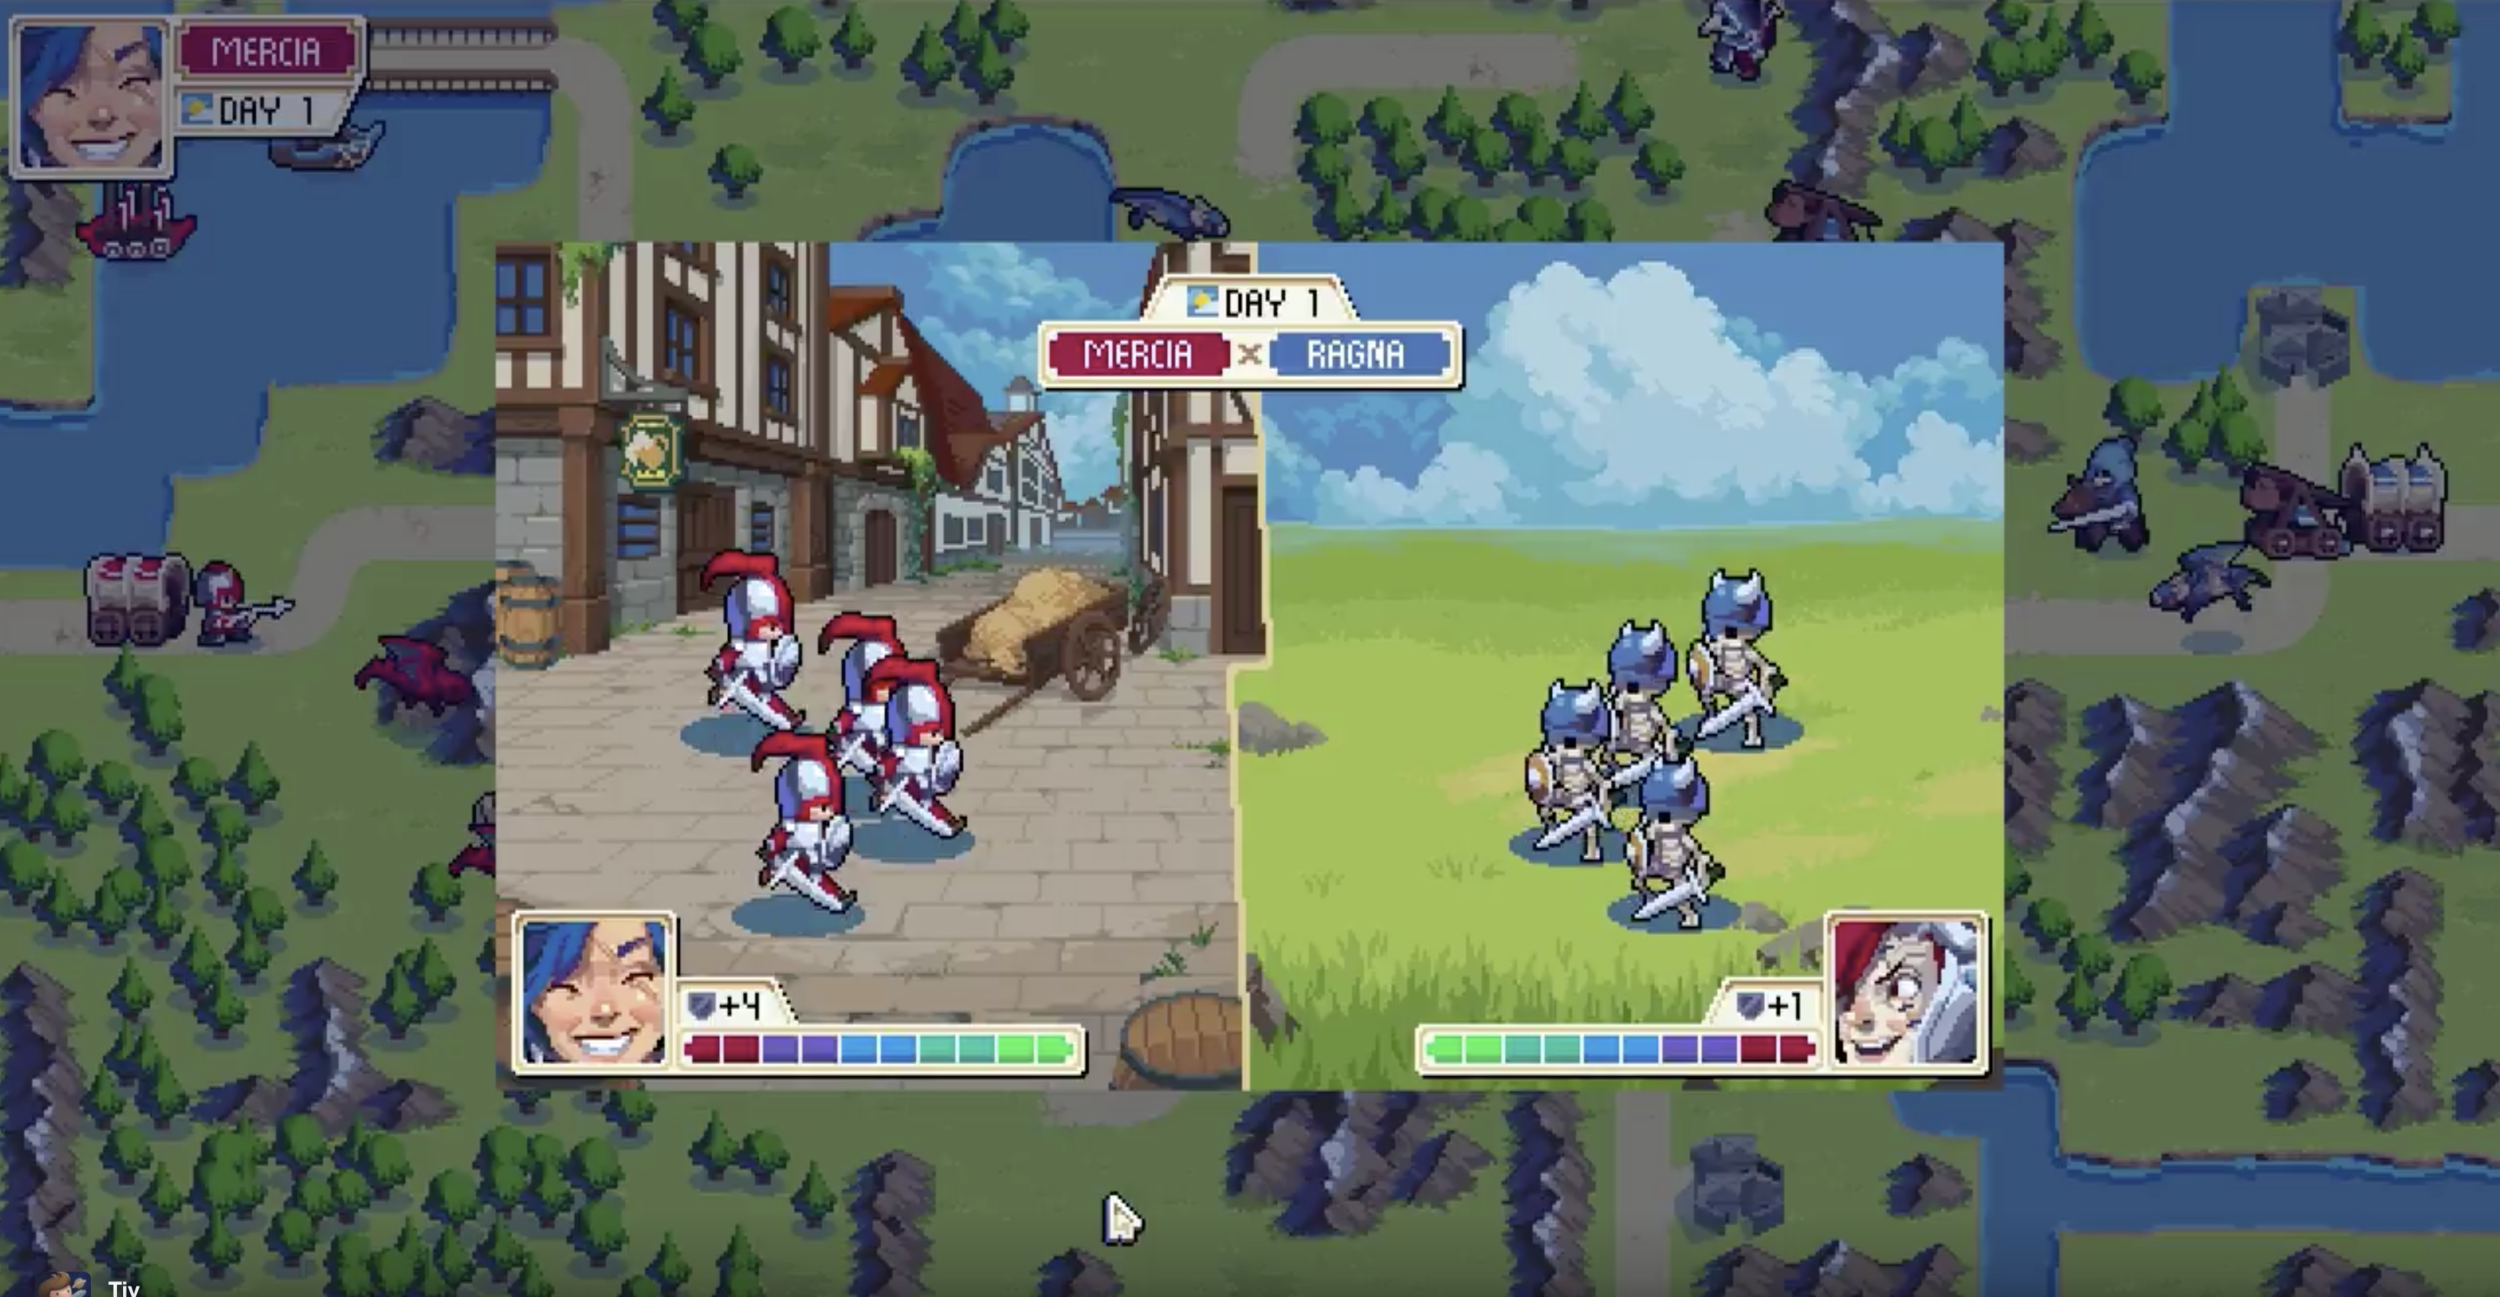 Battles look very similar to Advance Wars.